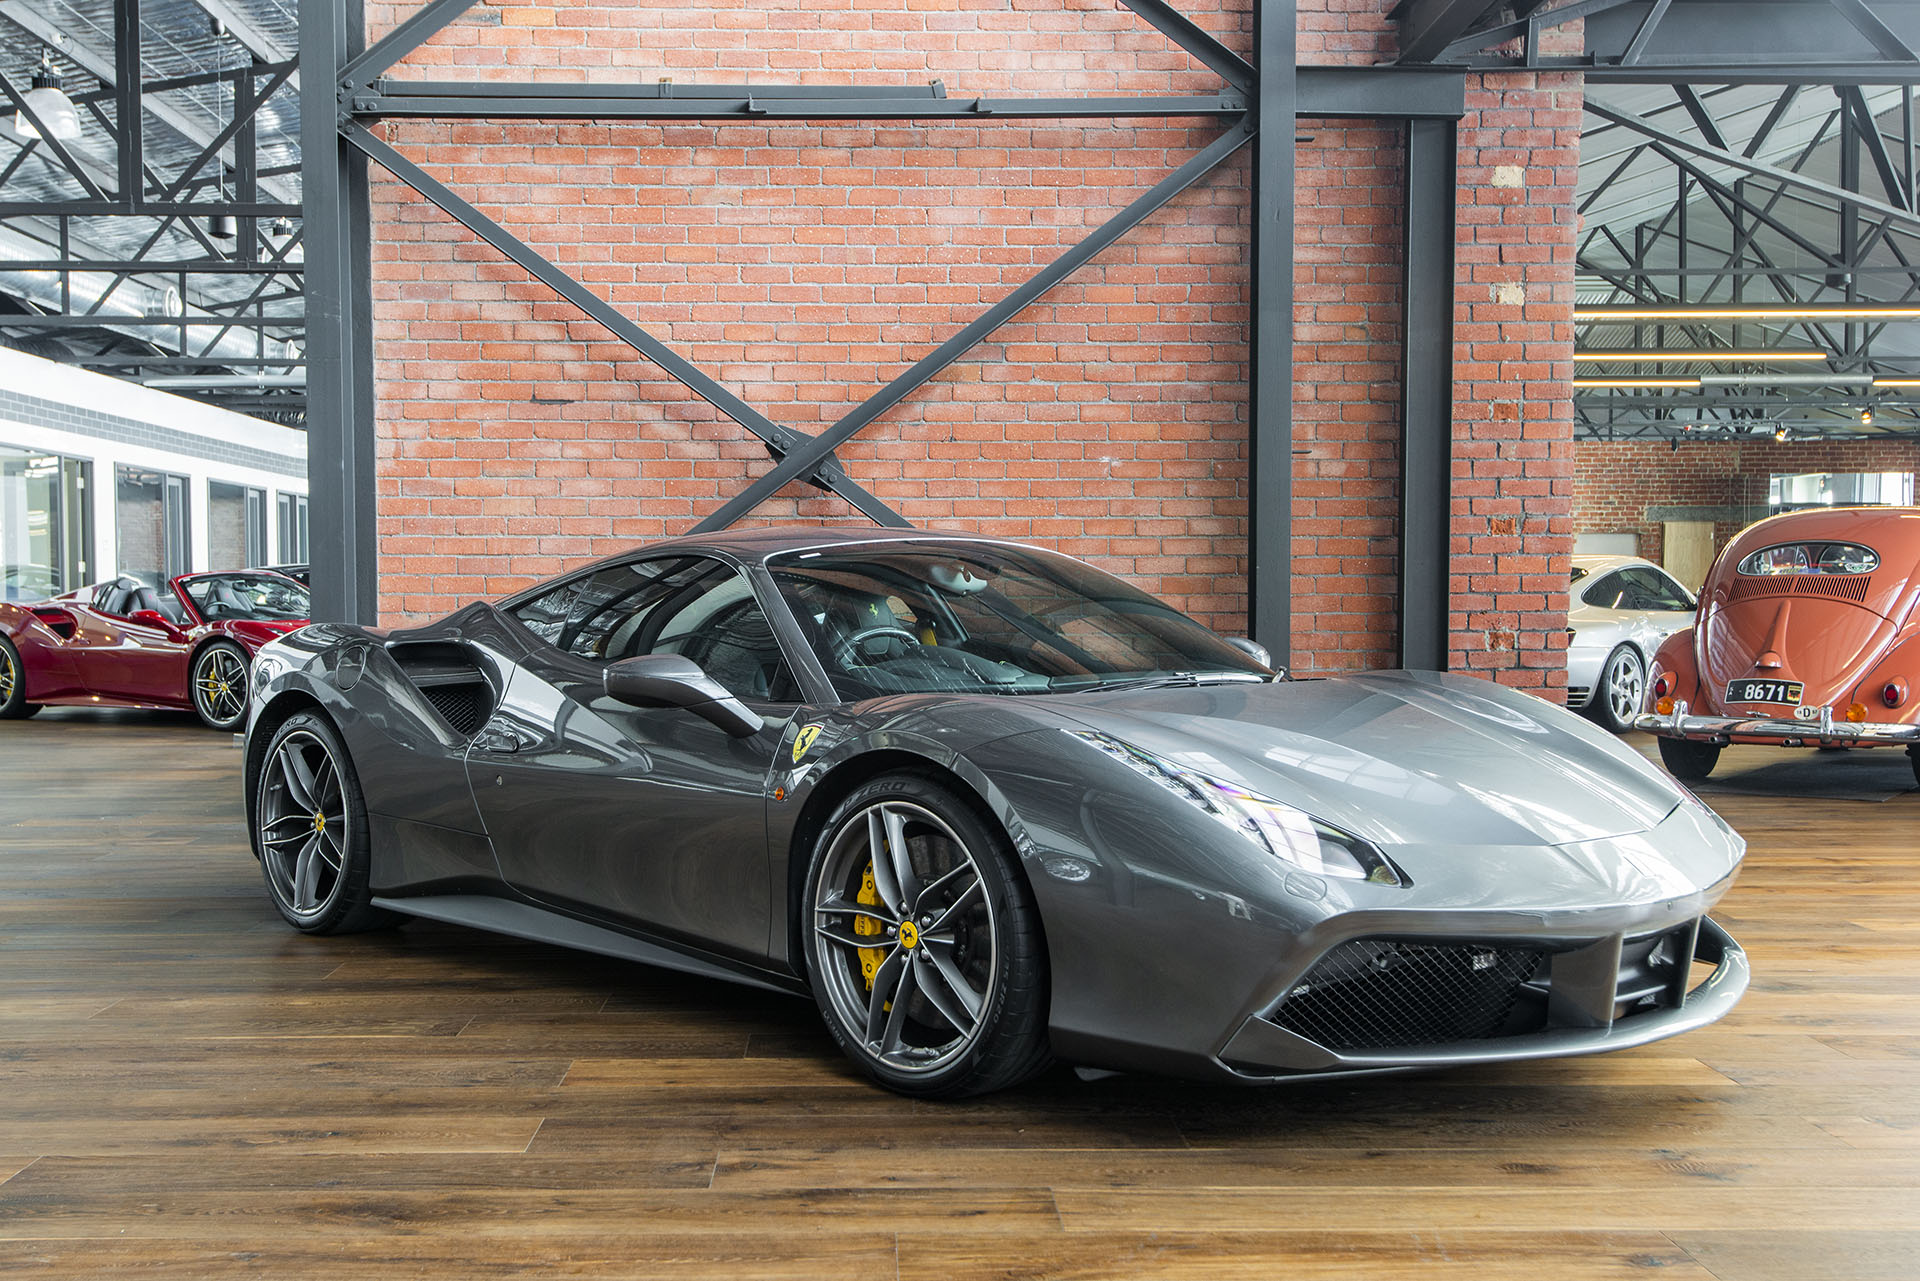 45a6128c01c412 2017 Ferrari 488 GTB Coupe - Richmonds - Classic and Prestige Cars ...